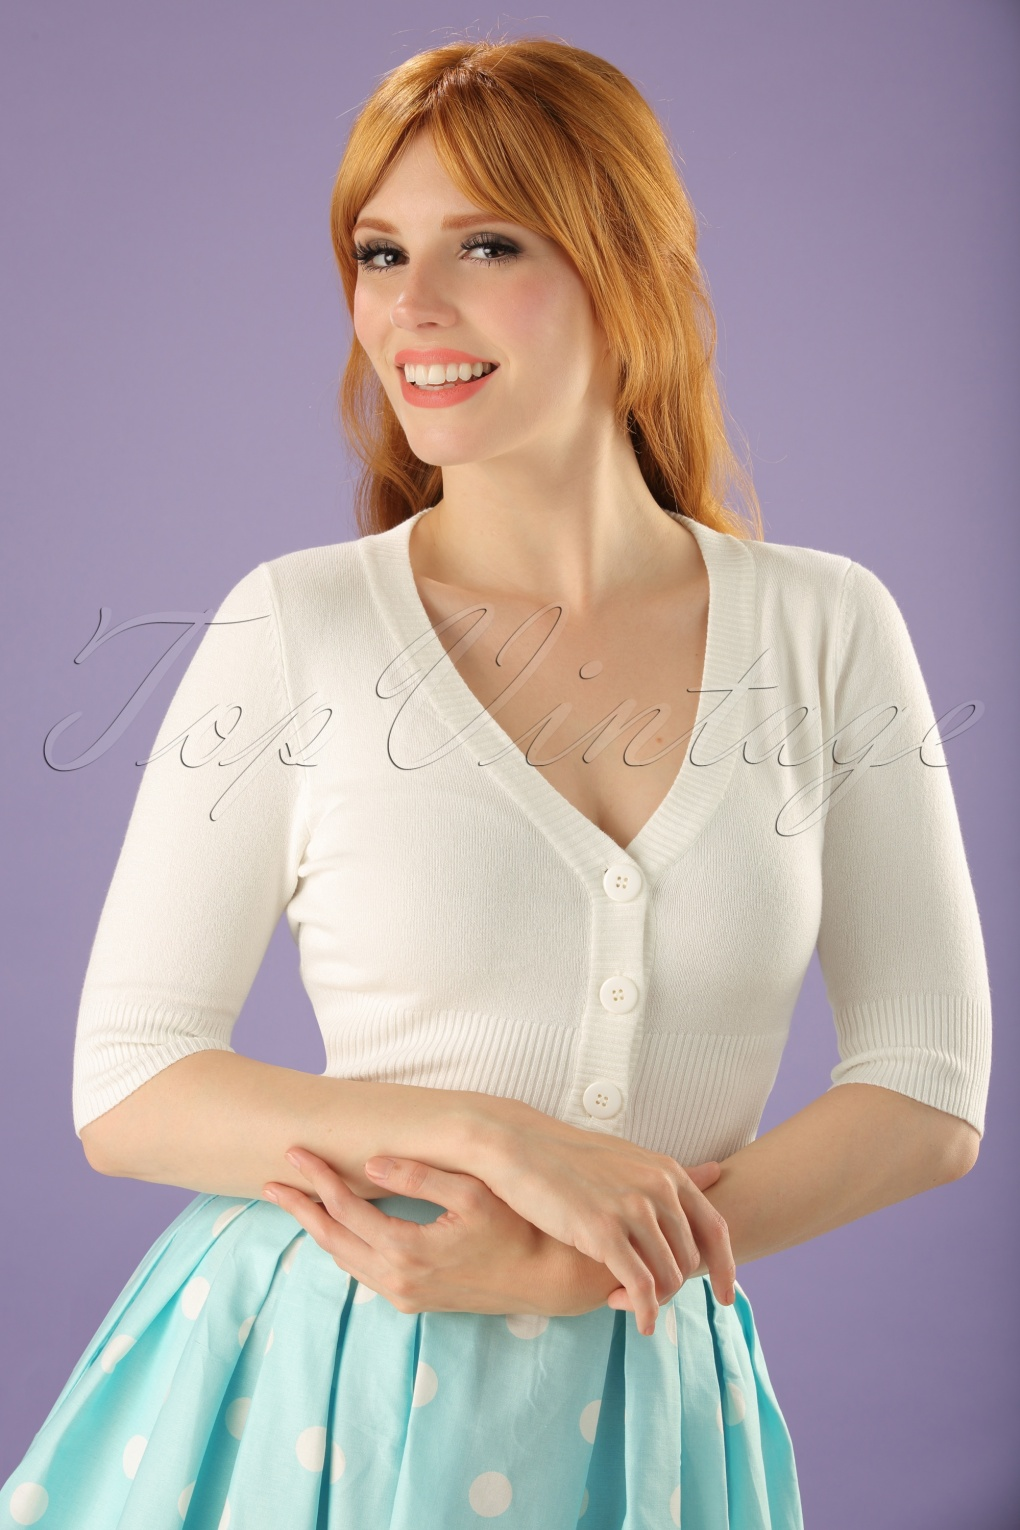 What Did Women Wear in the 1950s? 1950s Fashion Guide 50s Overload Cardigan in Ivory White £26.07 AT vintagedancer.com